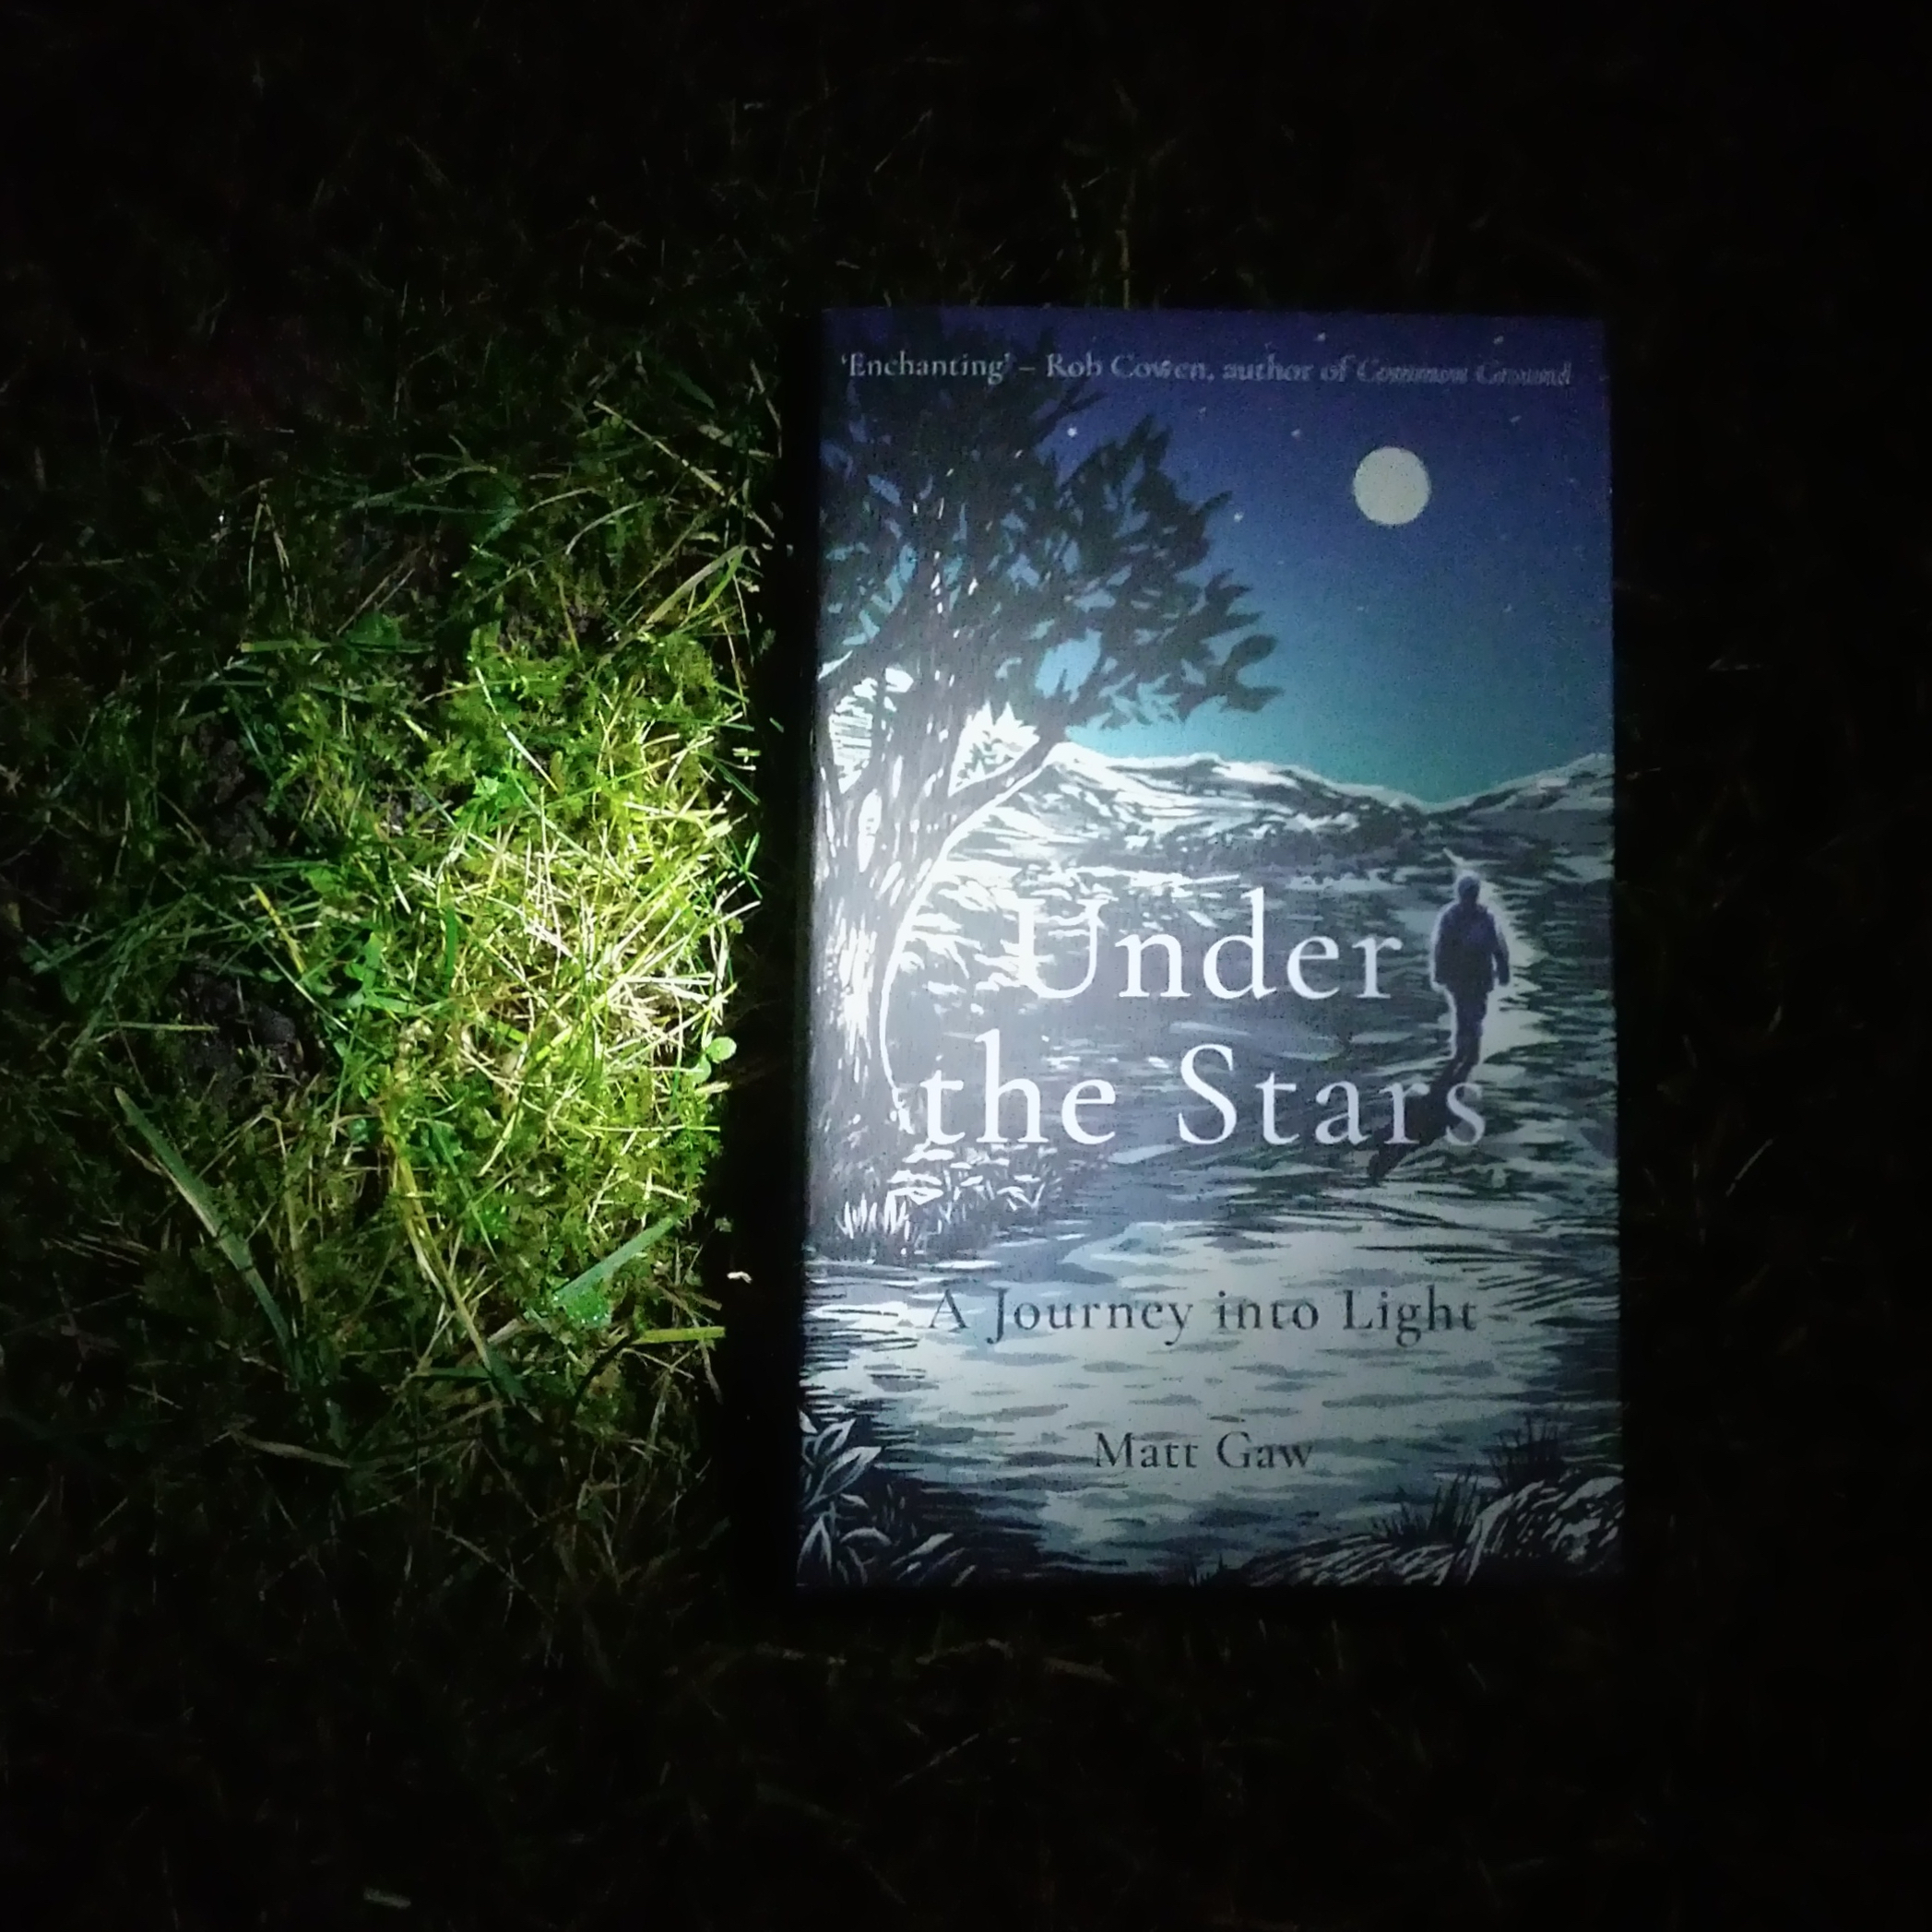 """""""Under the Stars: A Journey into Light"""" by Matt Gaw is published on February 20, 2020. Photo by Beach Books."""